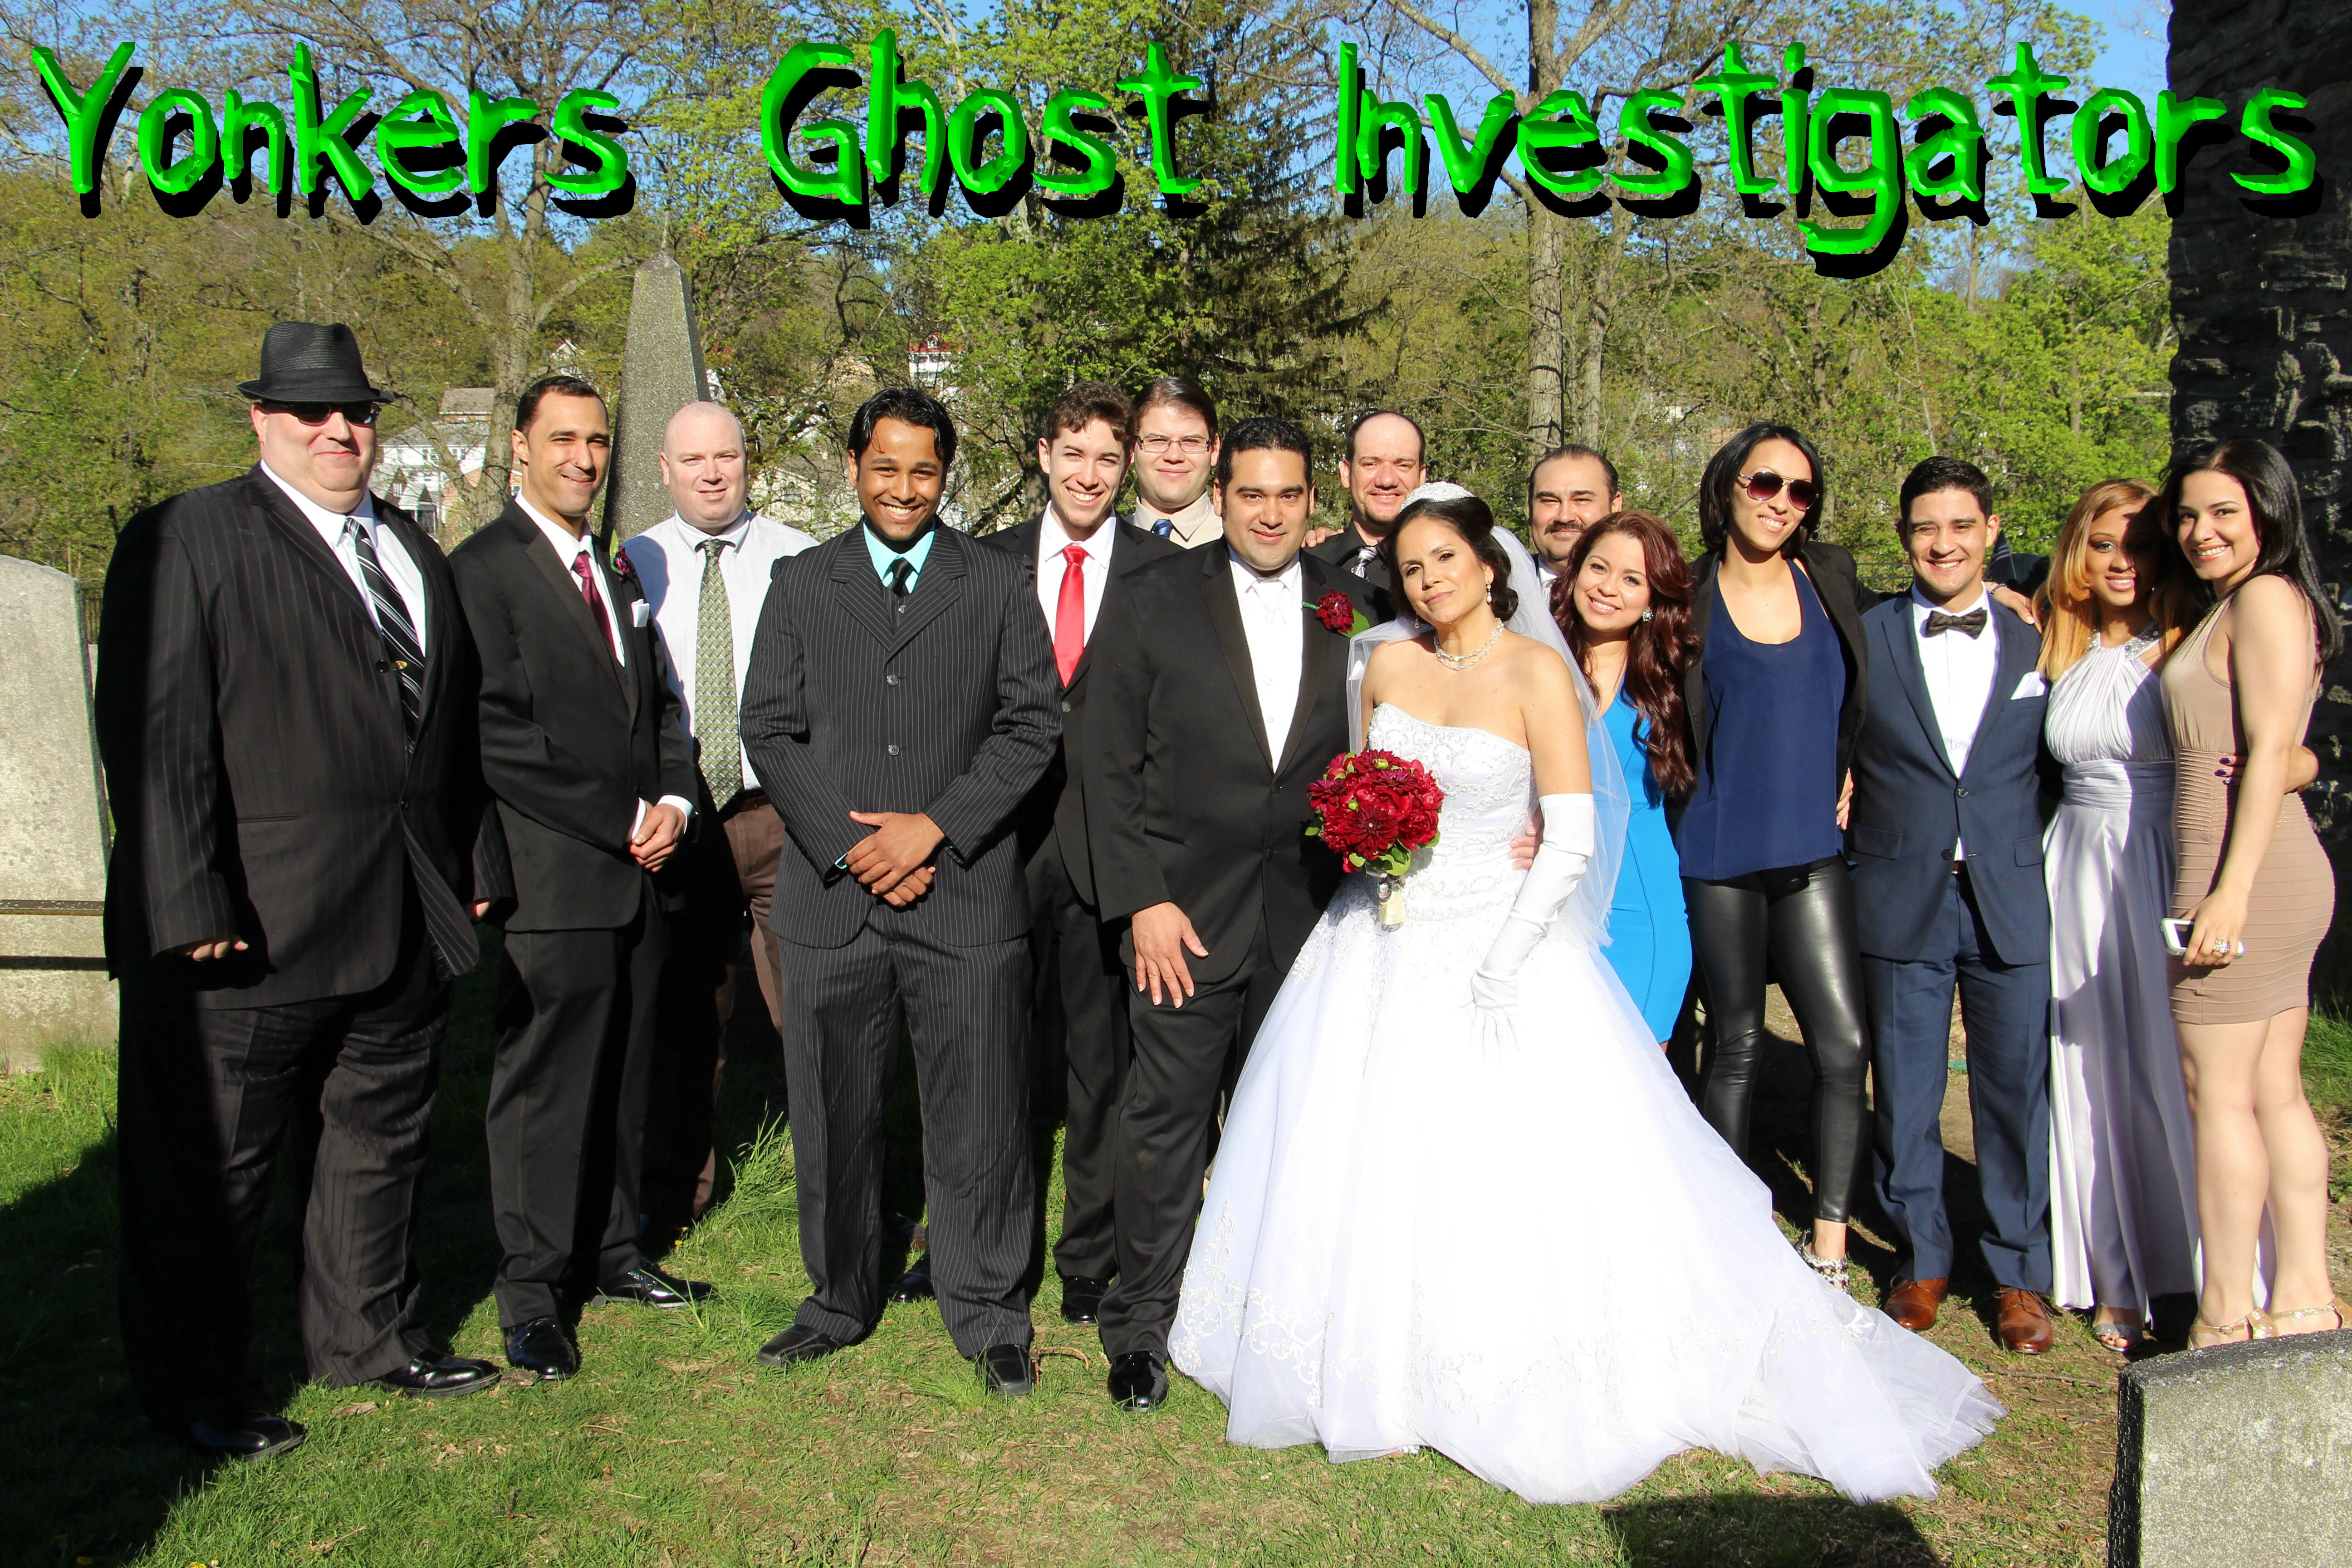 Most of the current and former members of the Westchester Ghost Investigators at Jason and Jo-Ann's wedding - Courtesy: Yonkers Ghost Investigators